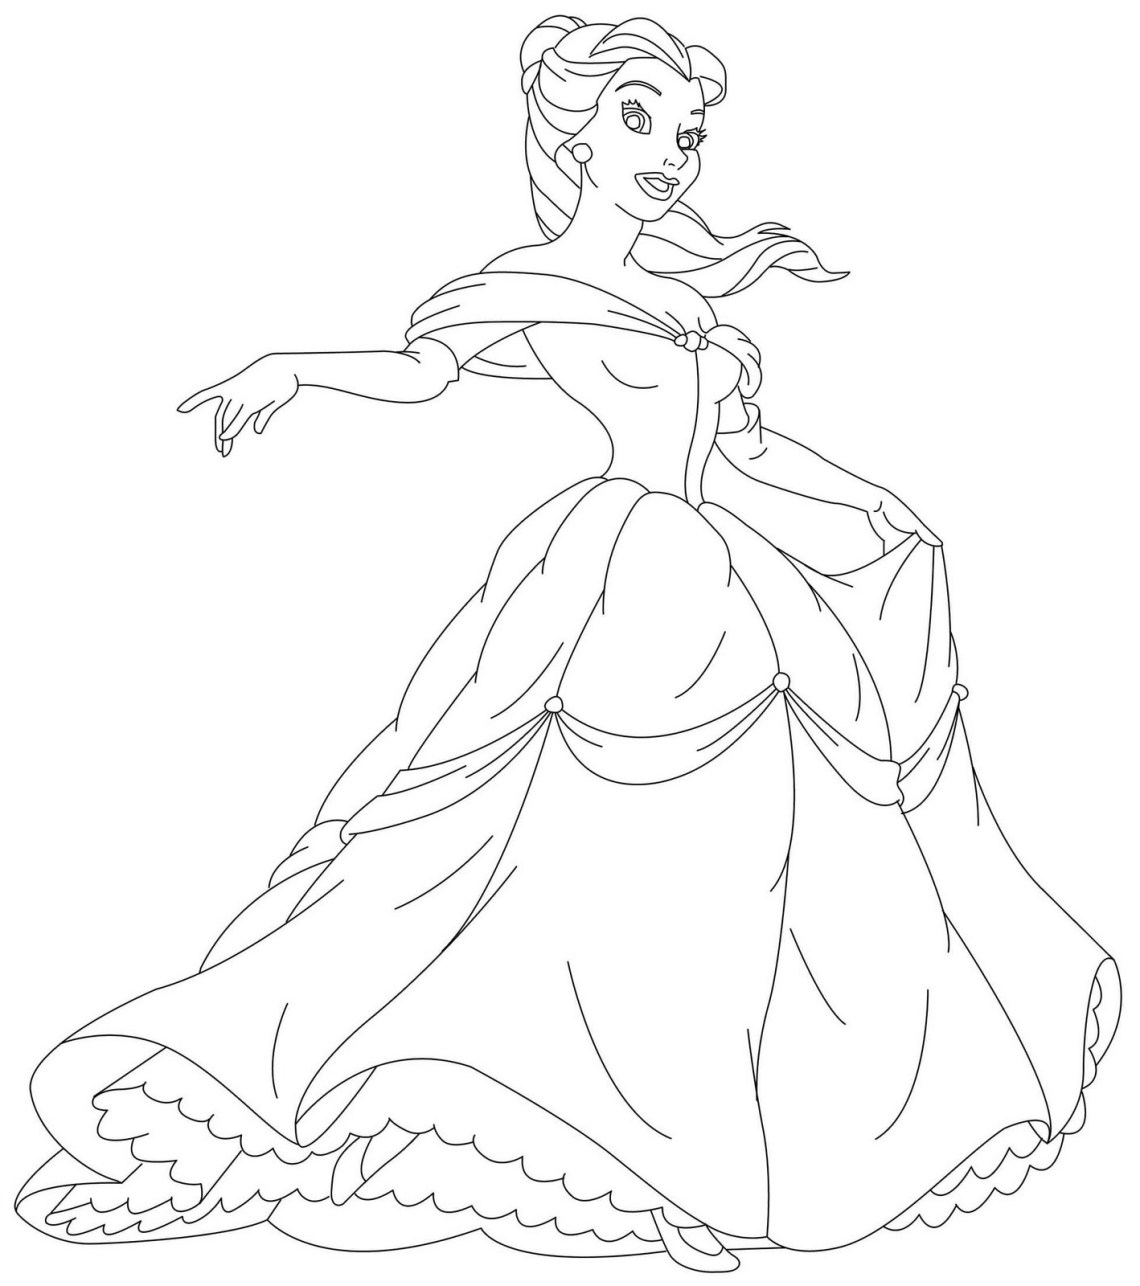 Disney Princesses Coloring Pages - Kidsuki | free printable coloring pages disney princesses